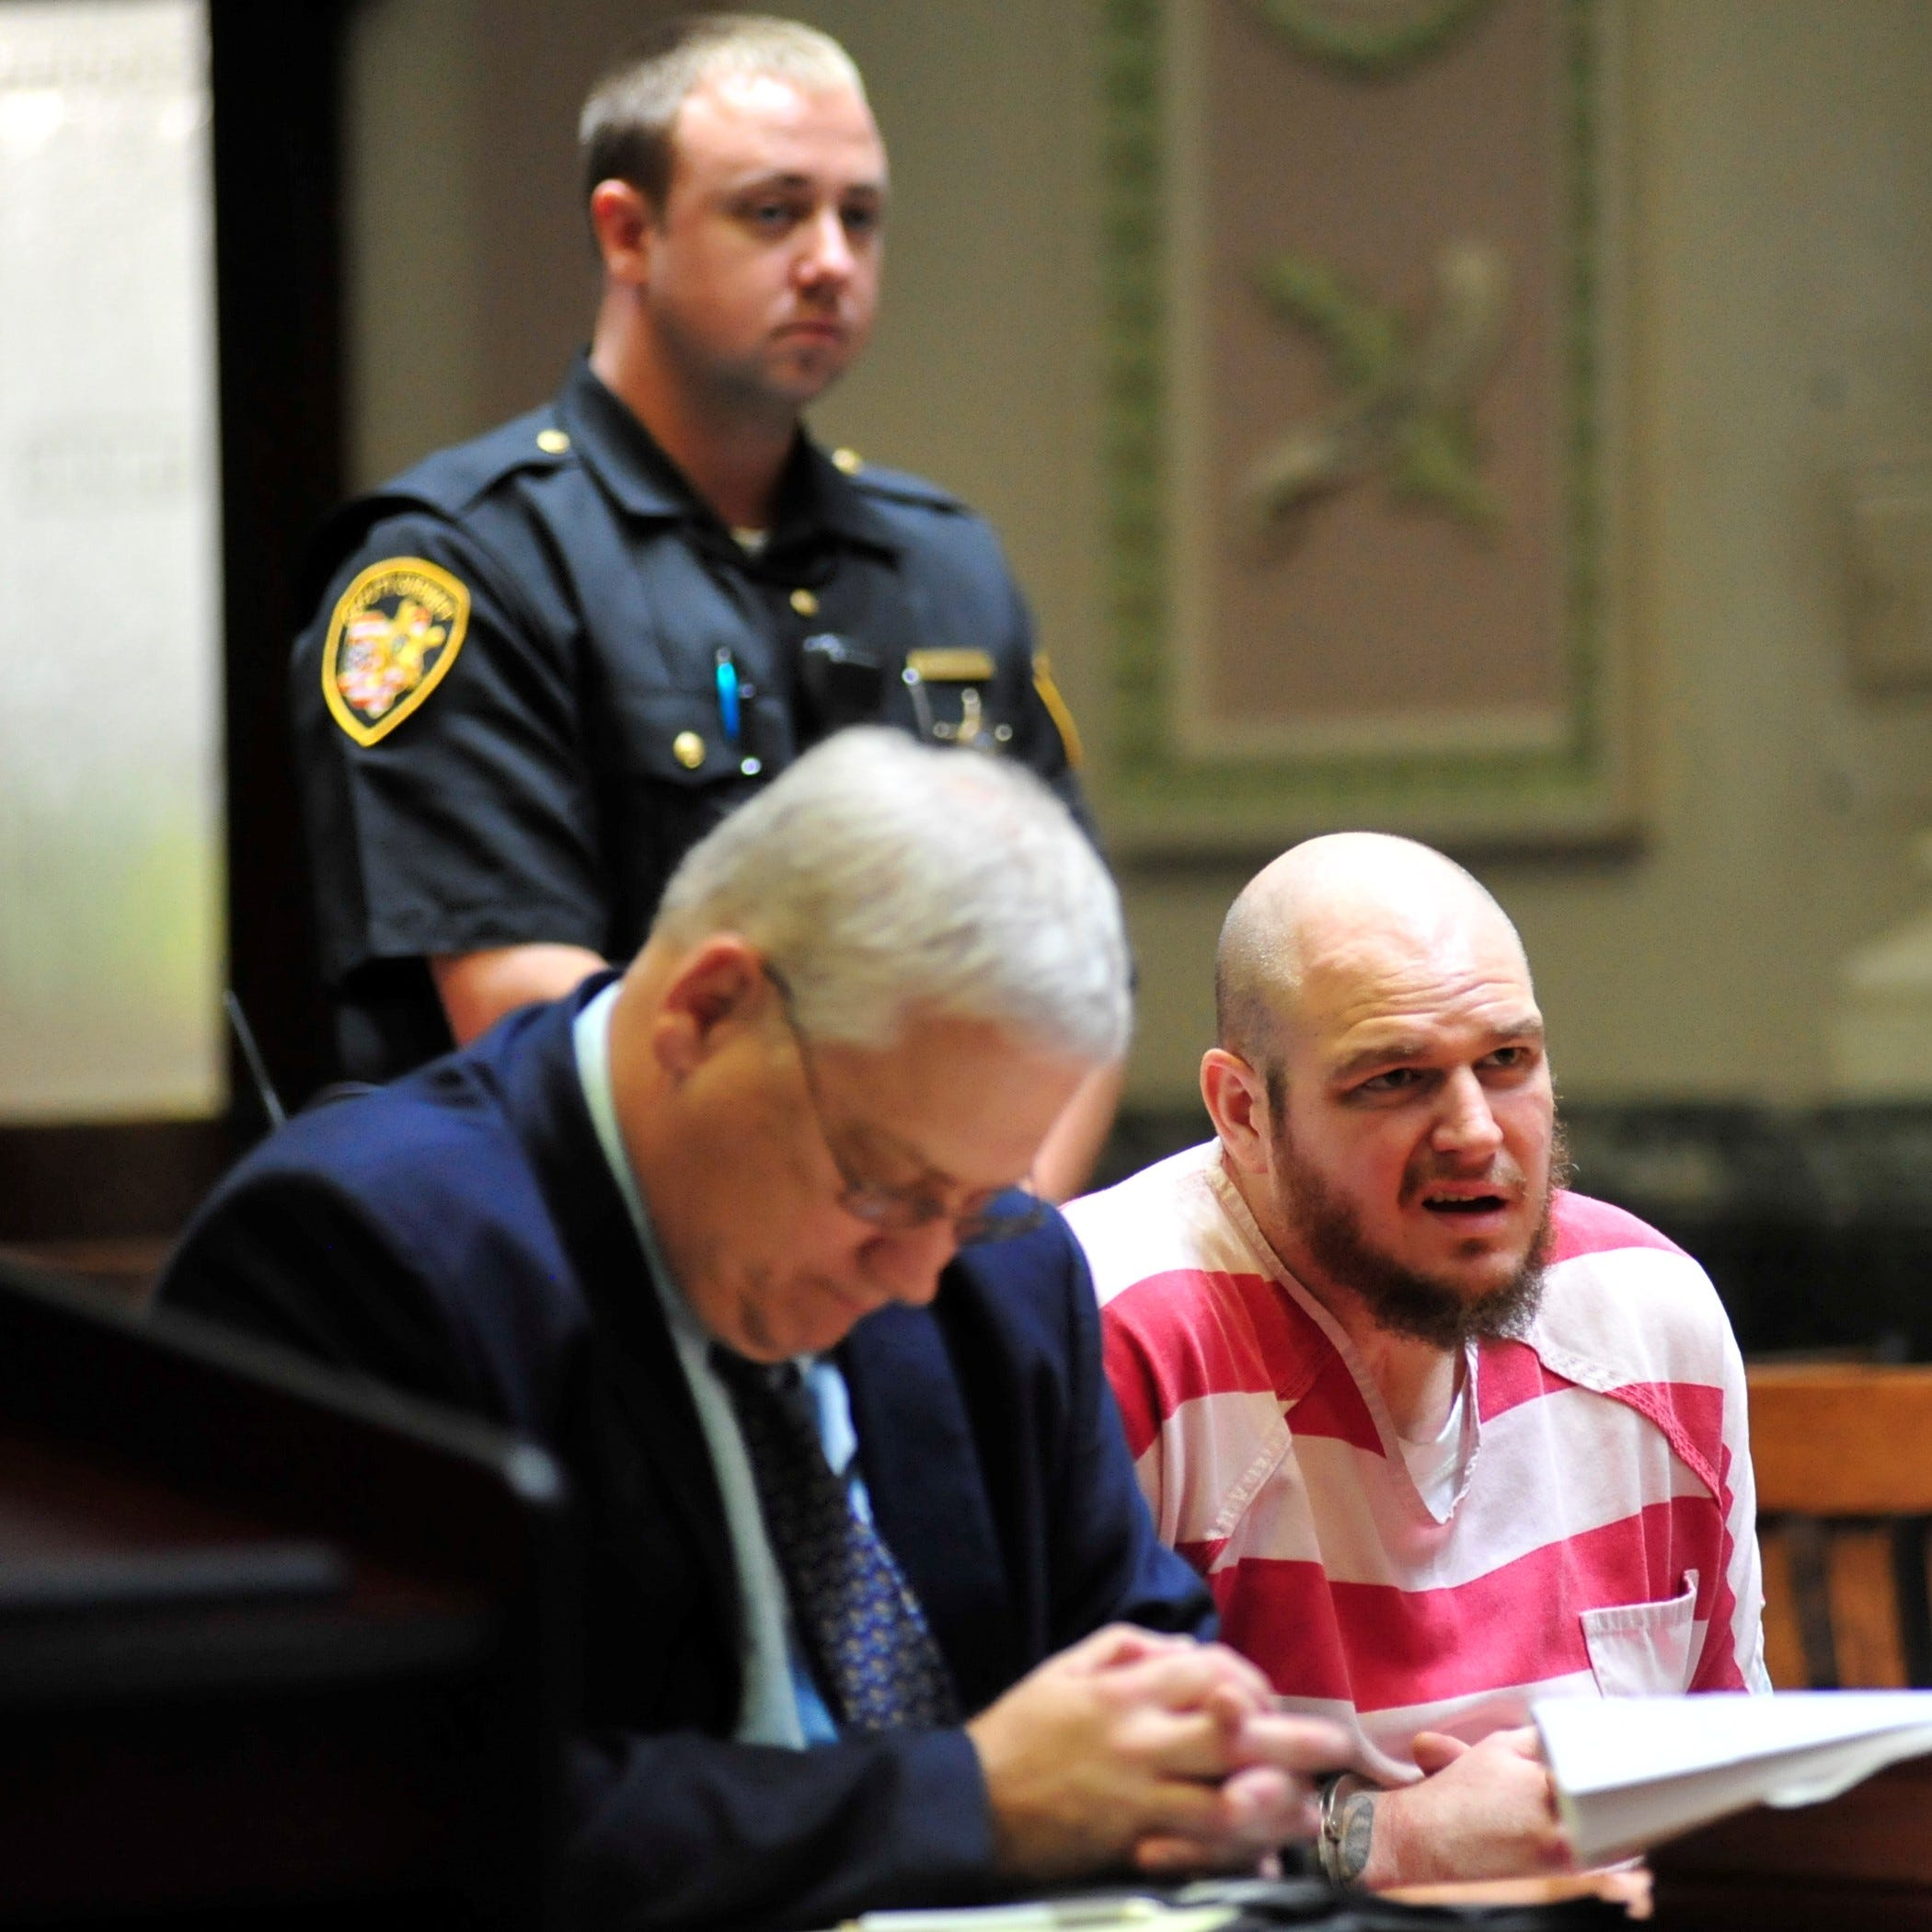 Kunzer gets 6 years for threatening judge's family and other officials